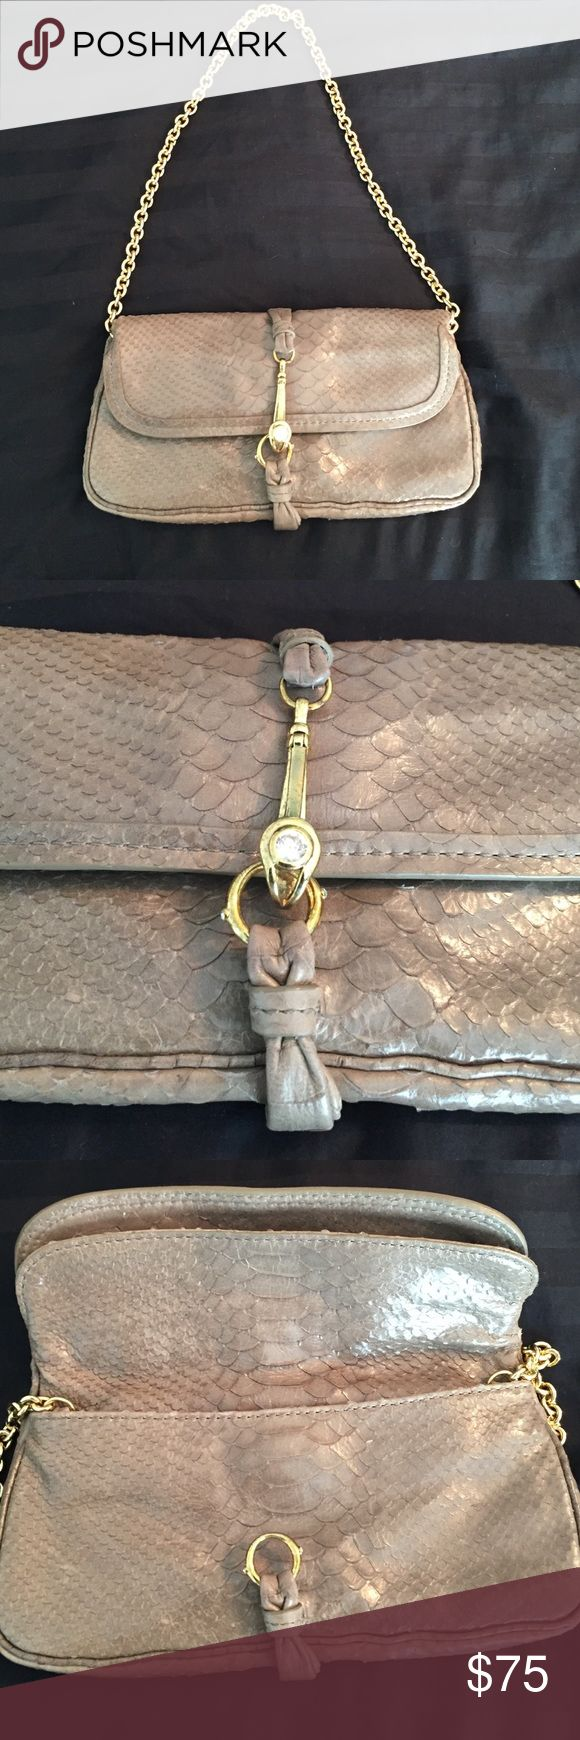 Henri Bendel Grey Clutch Henri Bendel bag can be worn as clutch or with gold strap. Has gold and rhinestone hook closure, with two inner compartments and an inner zipper. Taupe grey leather has snakeskin effect - only worn a handful of times, in near brand new condition and comes in original duster bag! henri bendel Bags Clutches & Wristlets